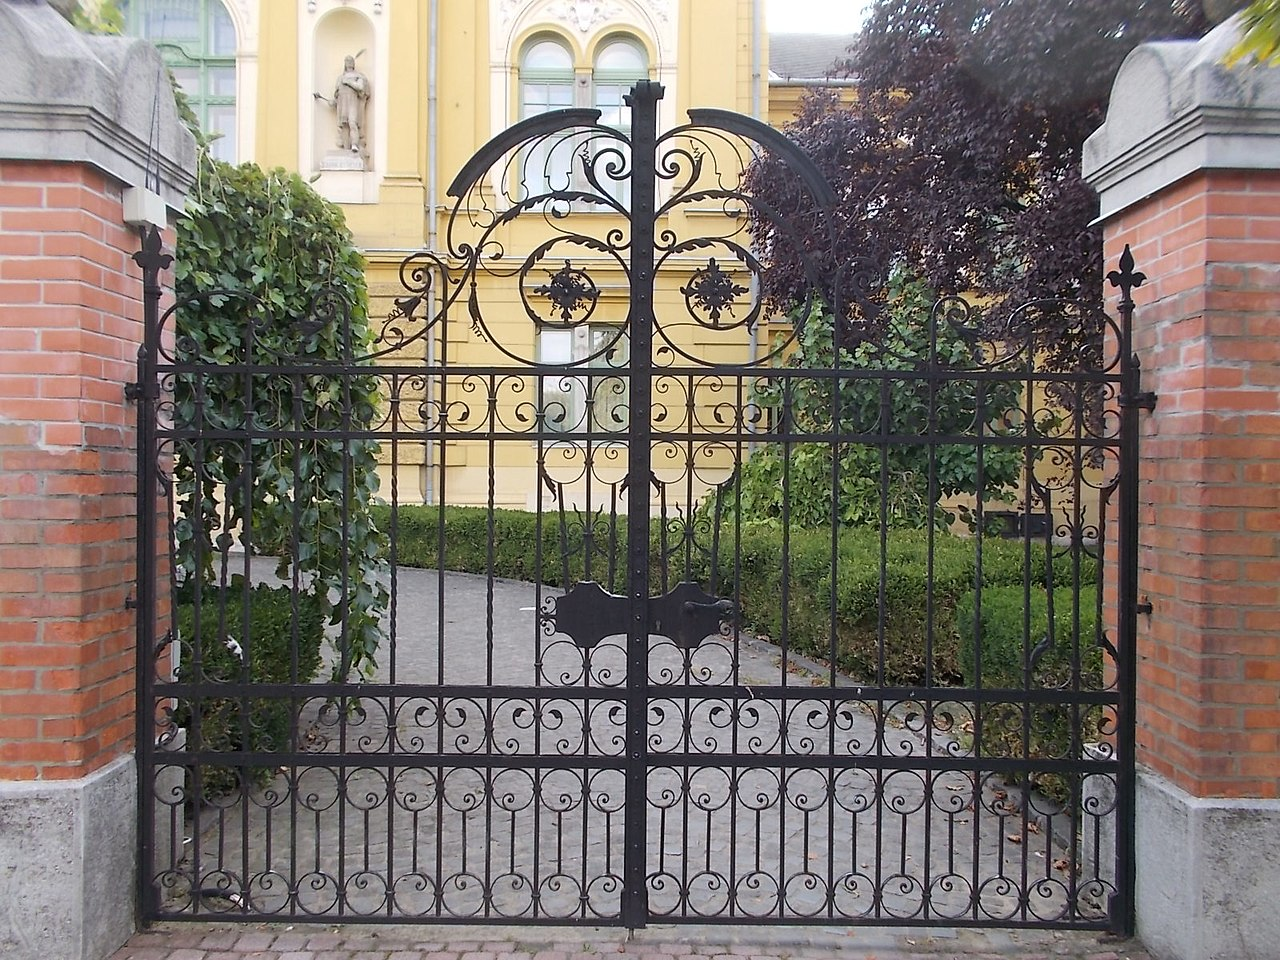 When Is Wrought Iron Not Wrought Iron? | Hackaday